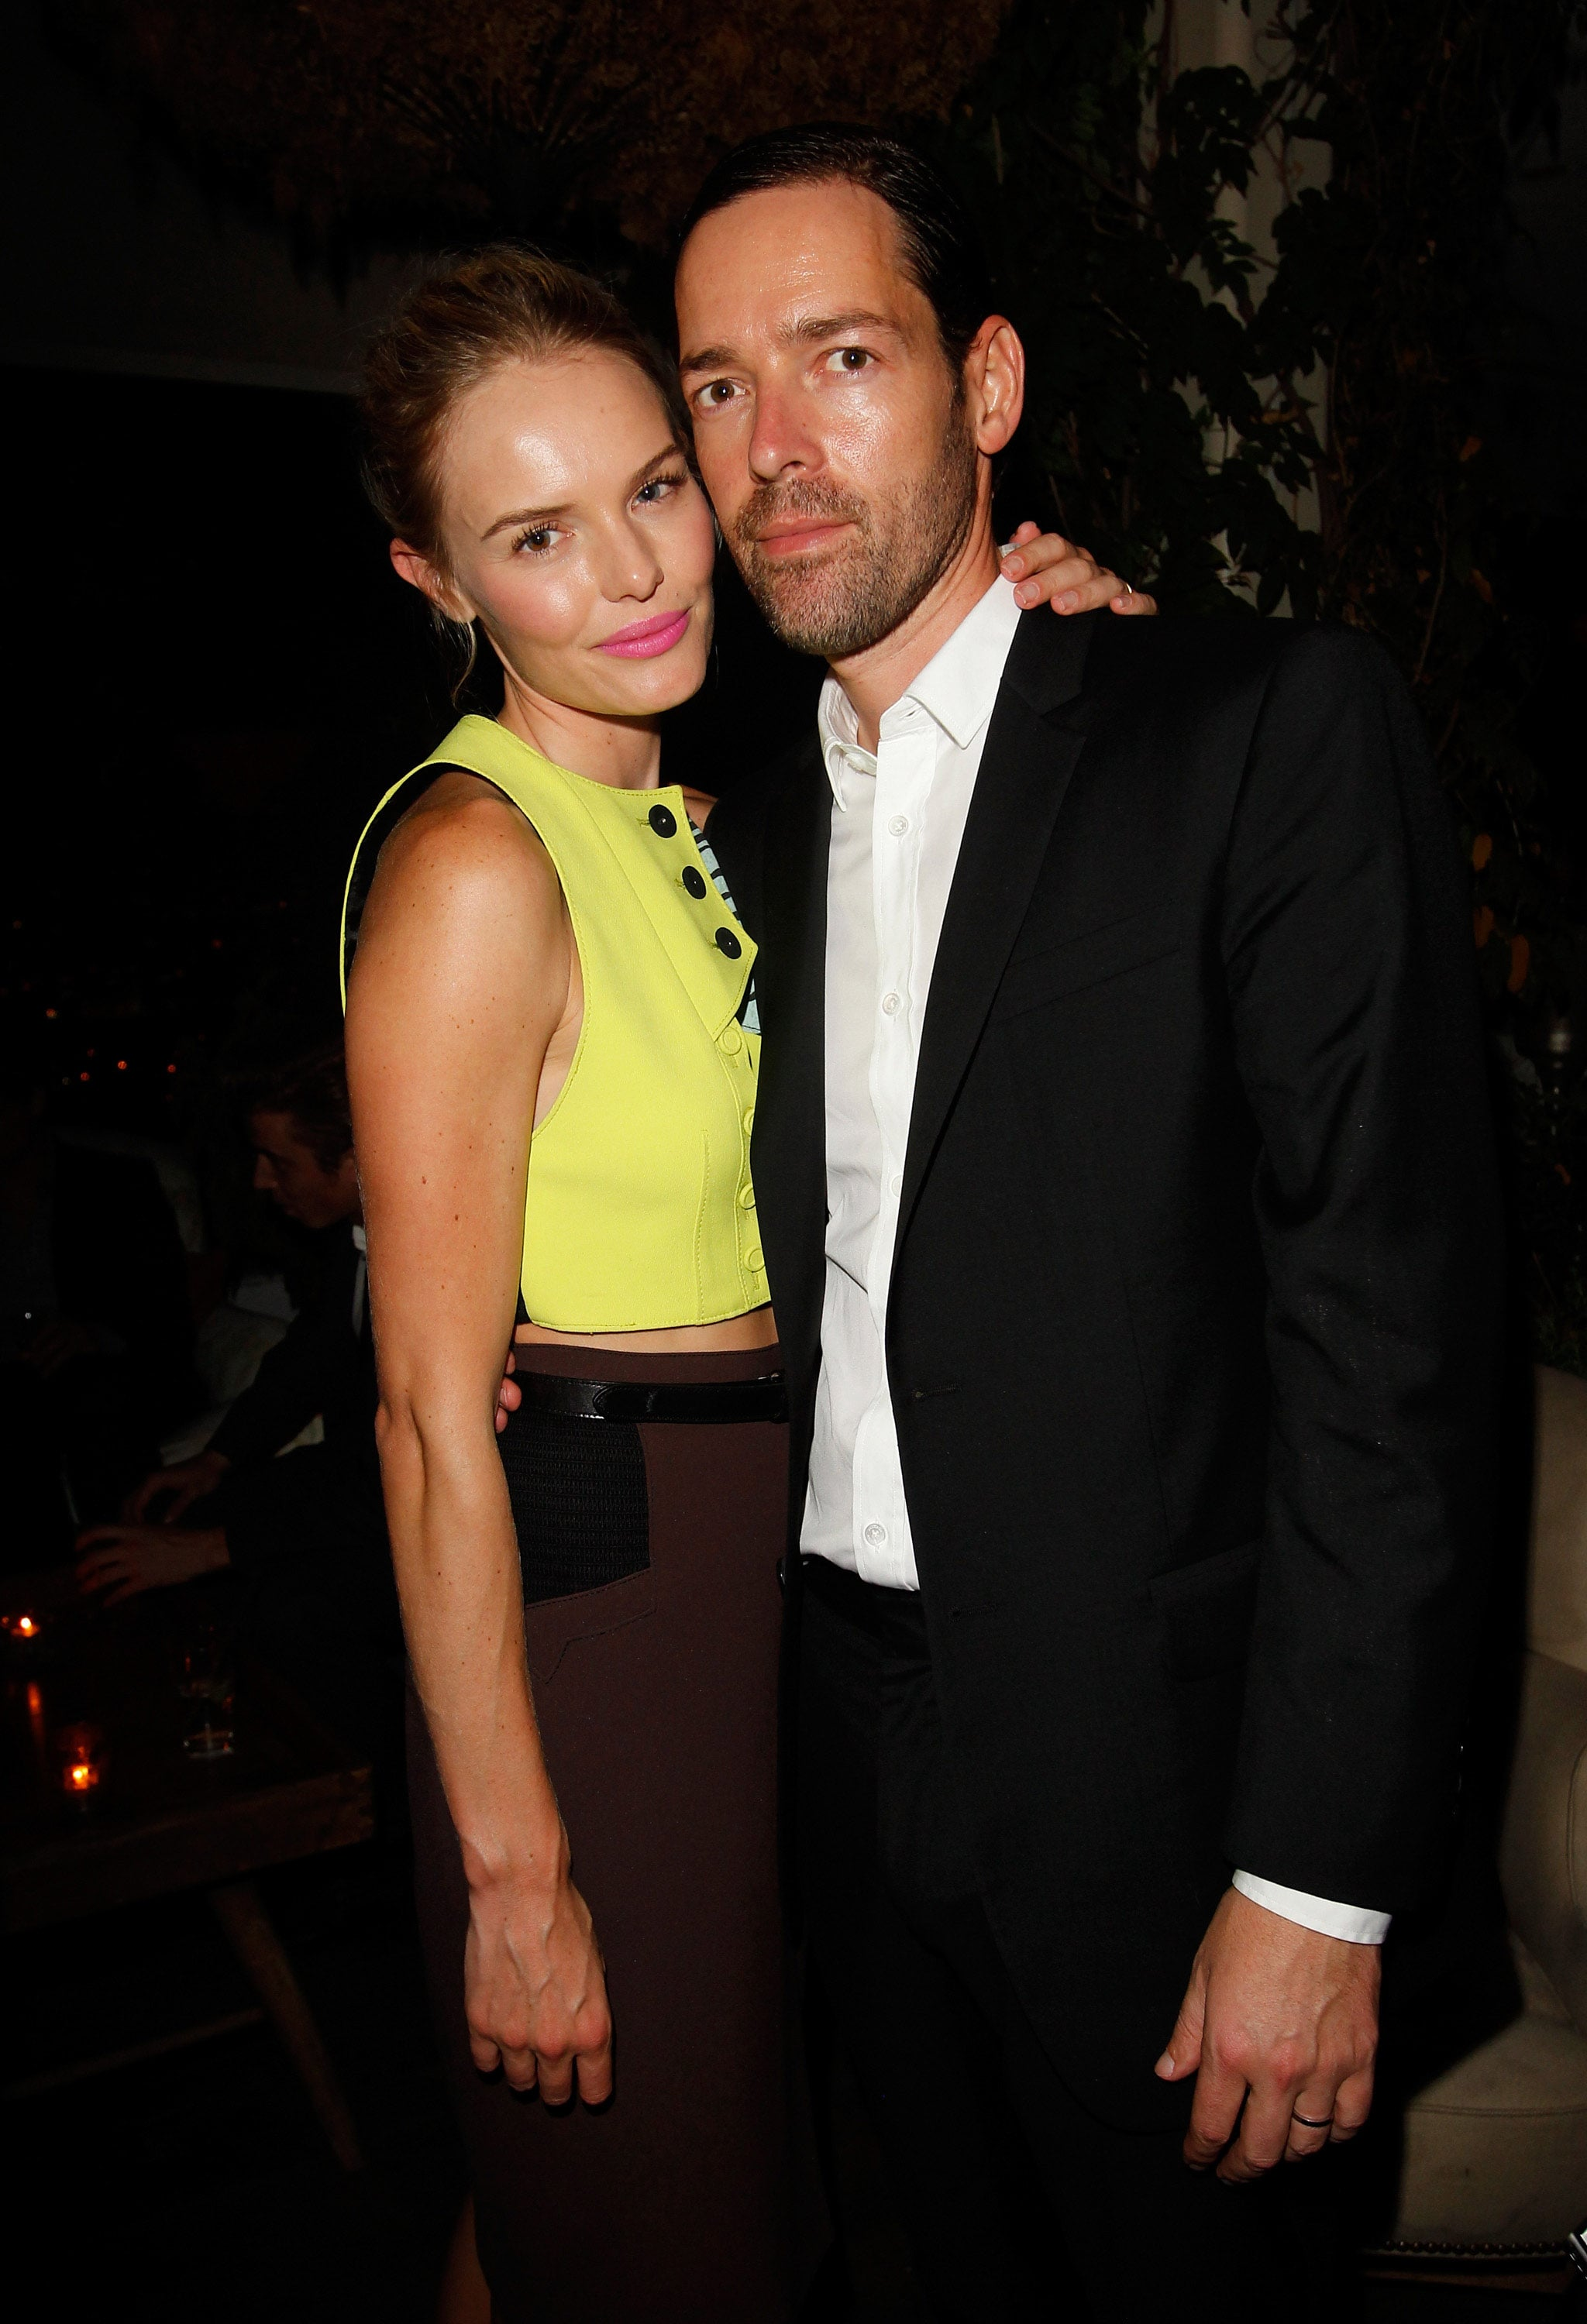 Kate Bosworth put her arm around Michael Polish in LA.